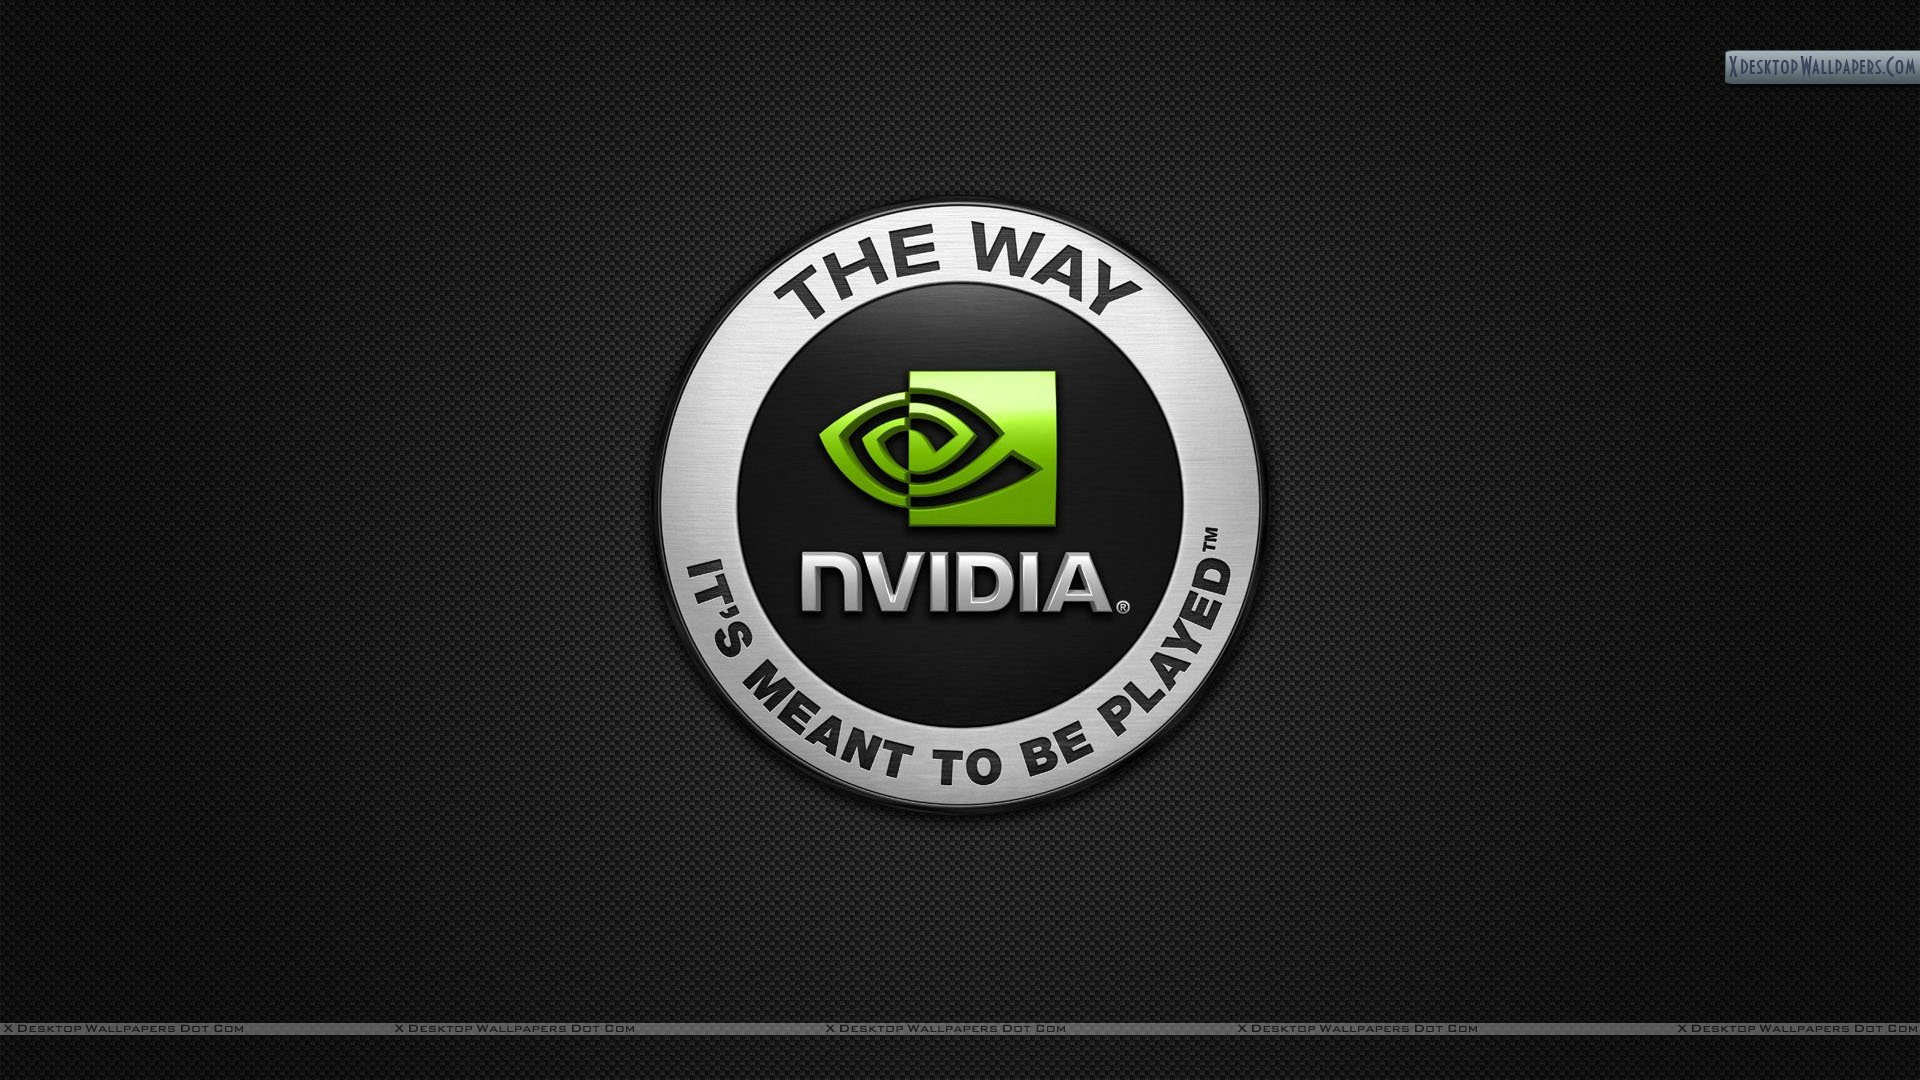 NVidia Wallpapers Photos Images In HD